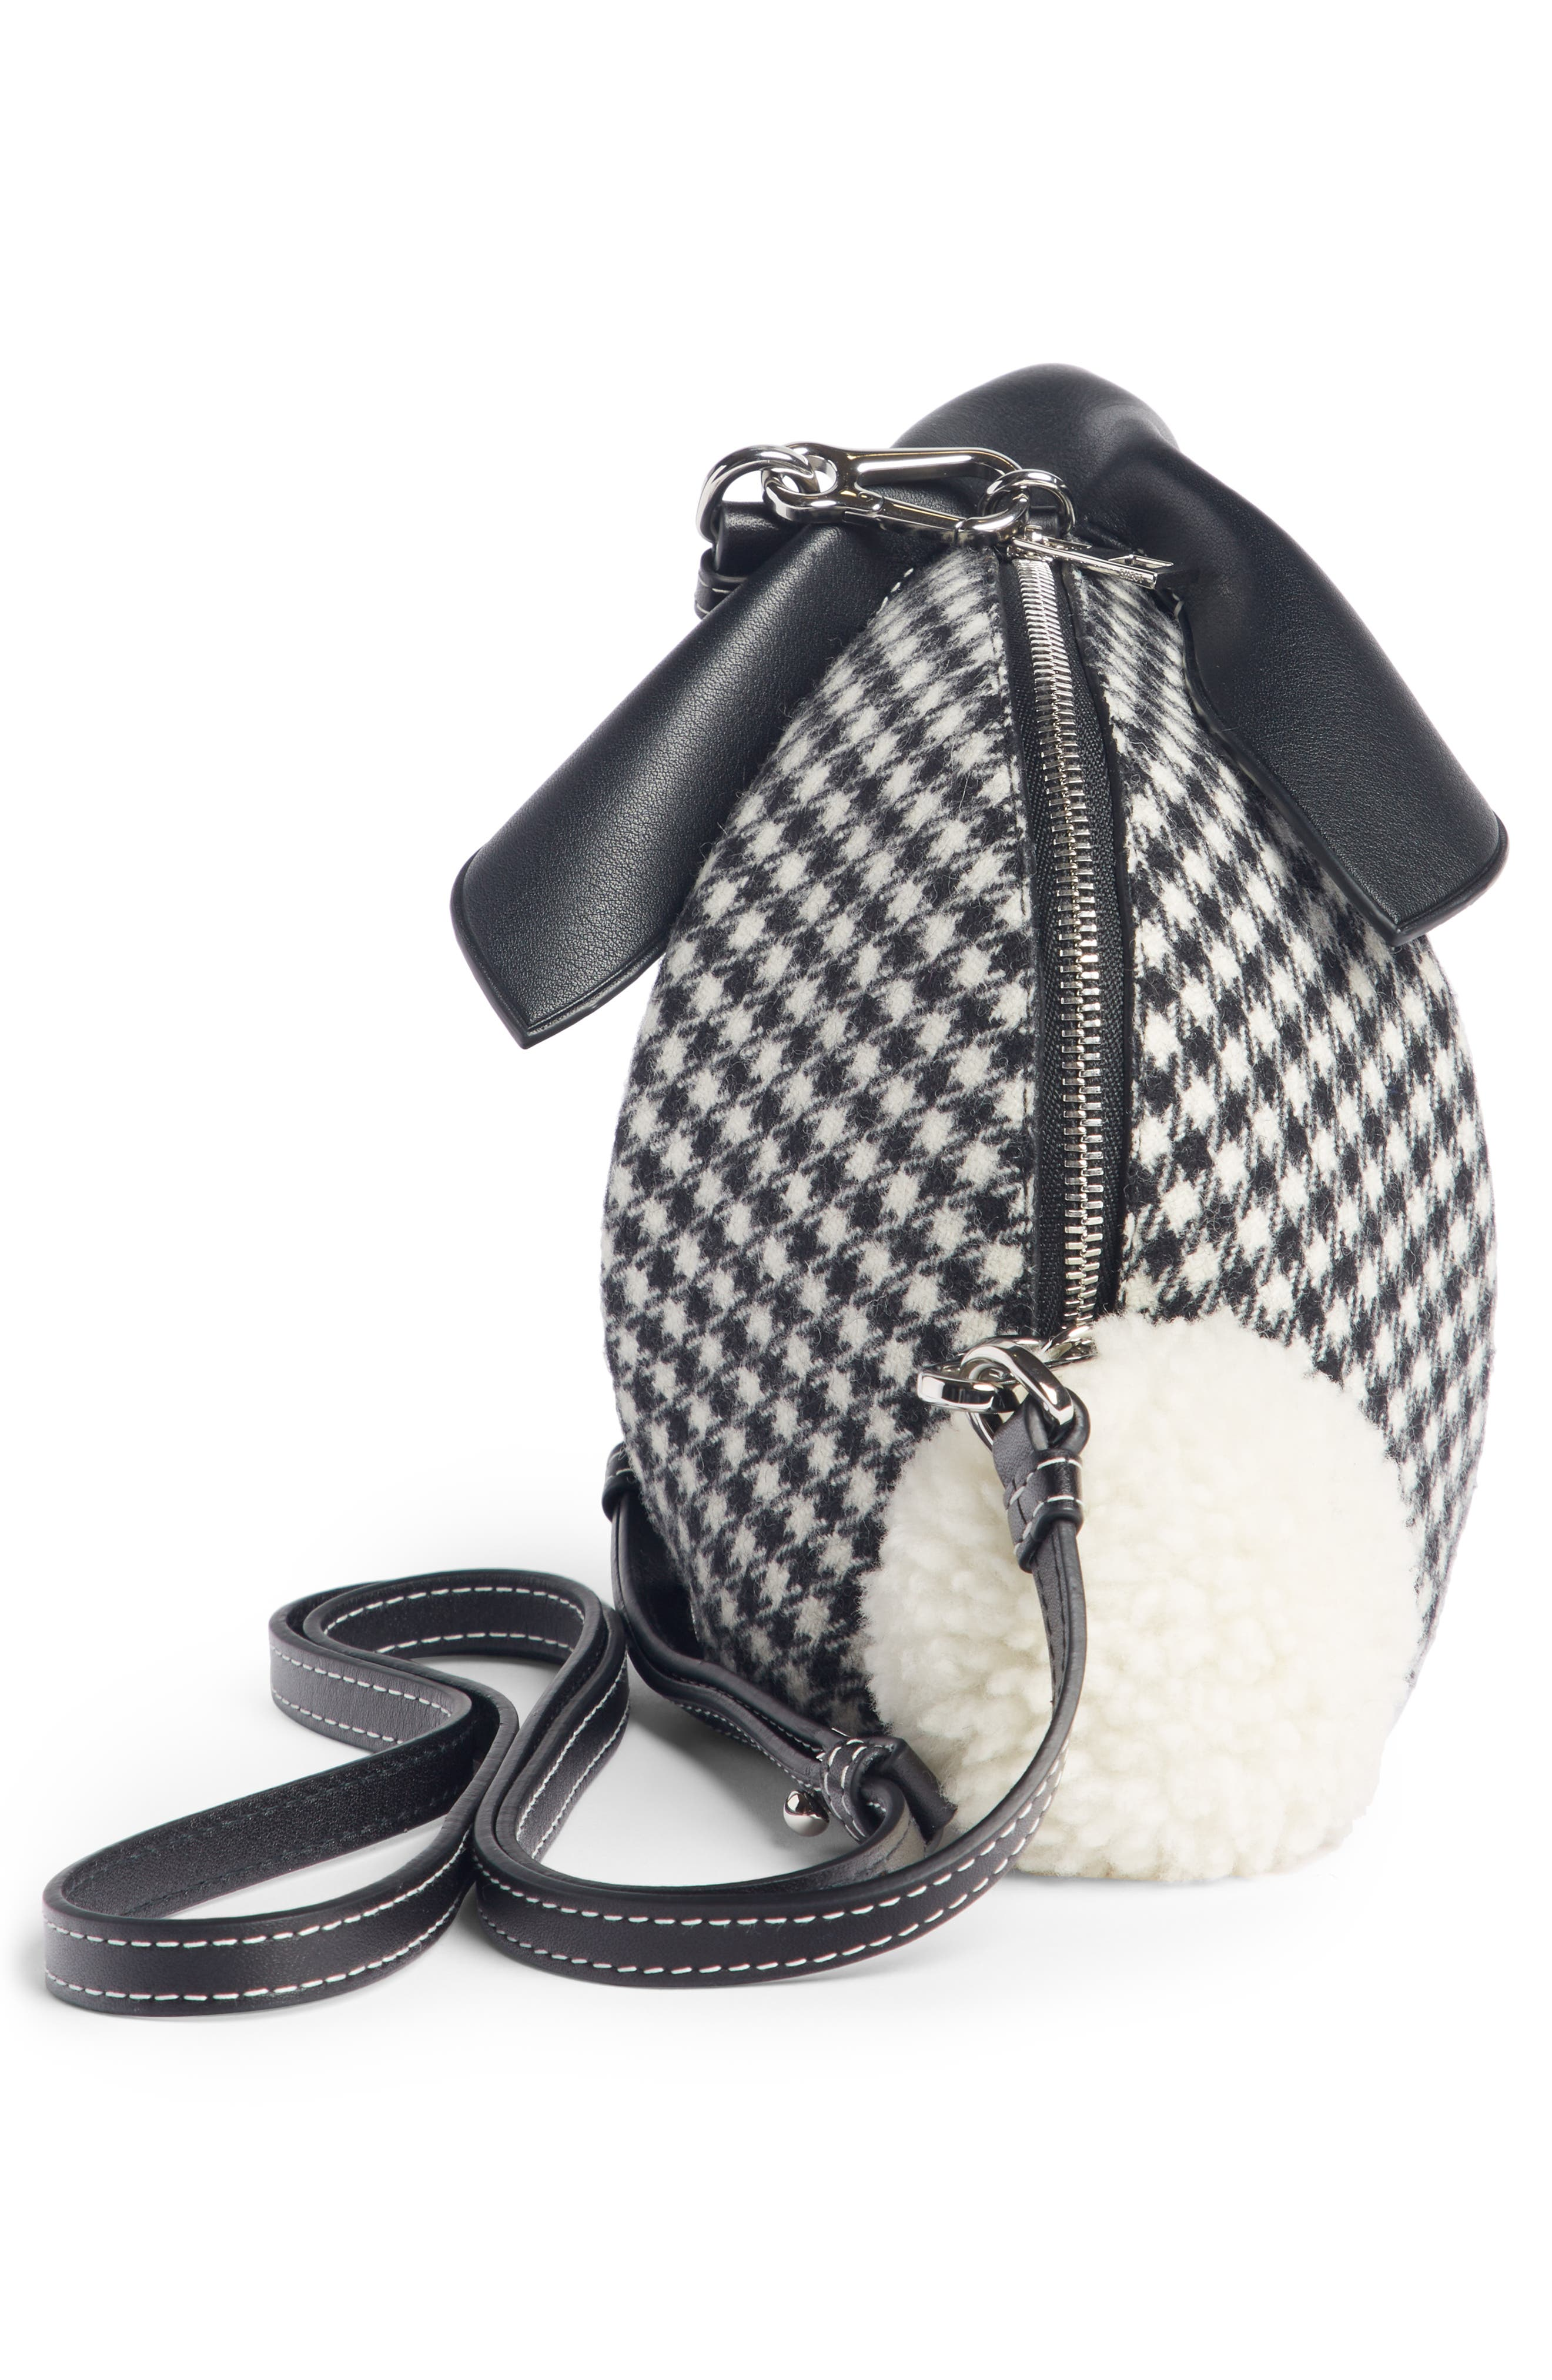 Mini Bunny Tweed & Leather Crossbody Bag with Genuine Shearling Trim,                             Alternate thumbnail 3, color,                             003